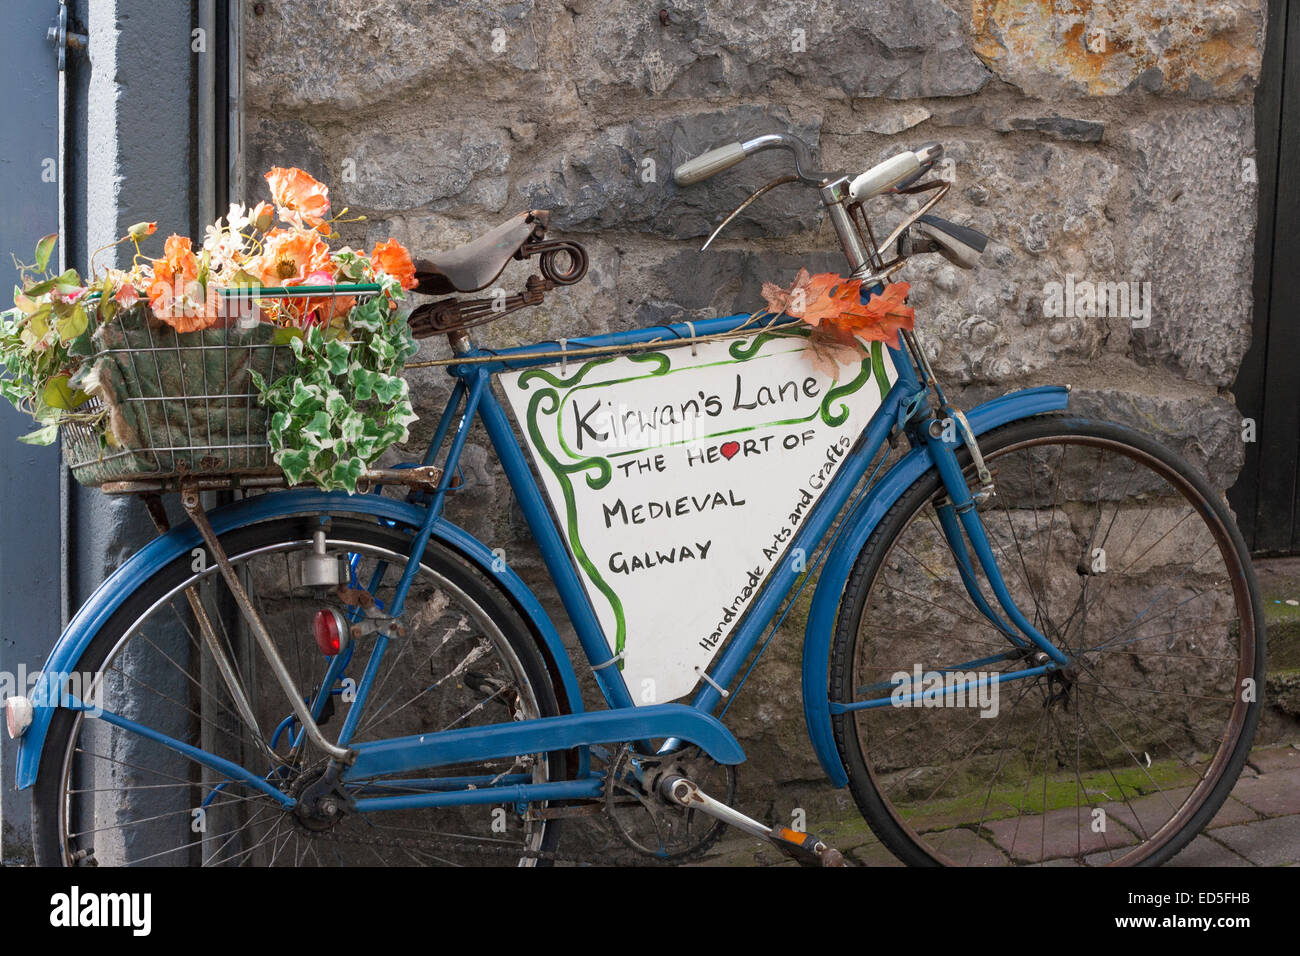 Bicycle with flowers used as signage for Kirwan's Lane in Galway city. - Stock Image